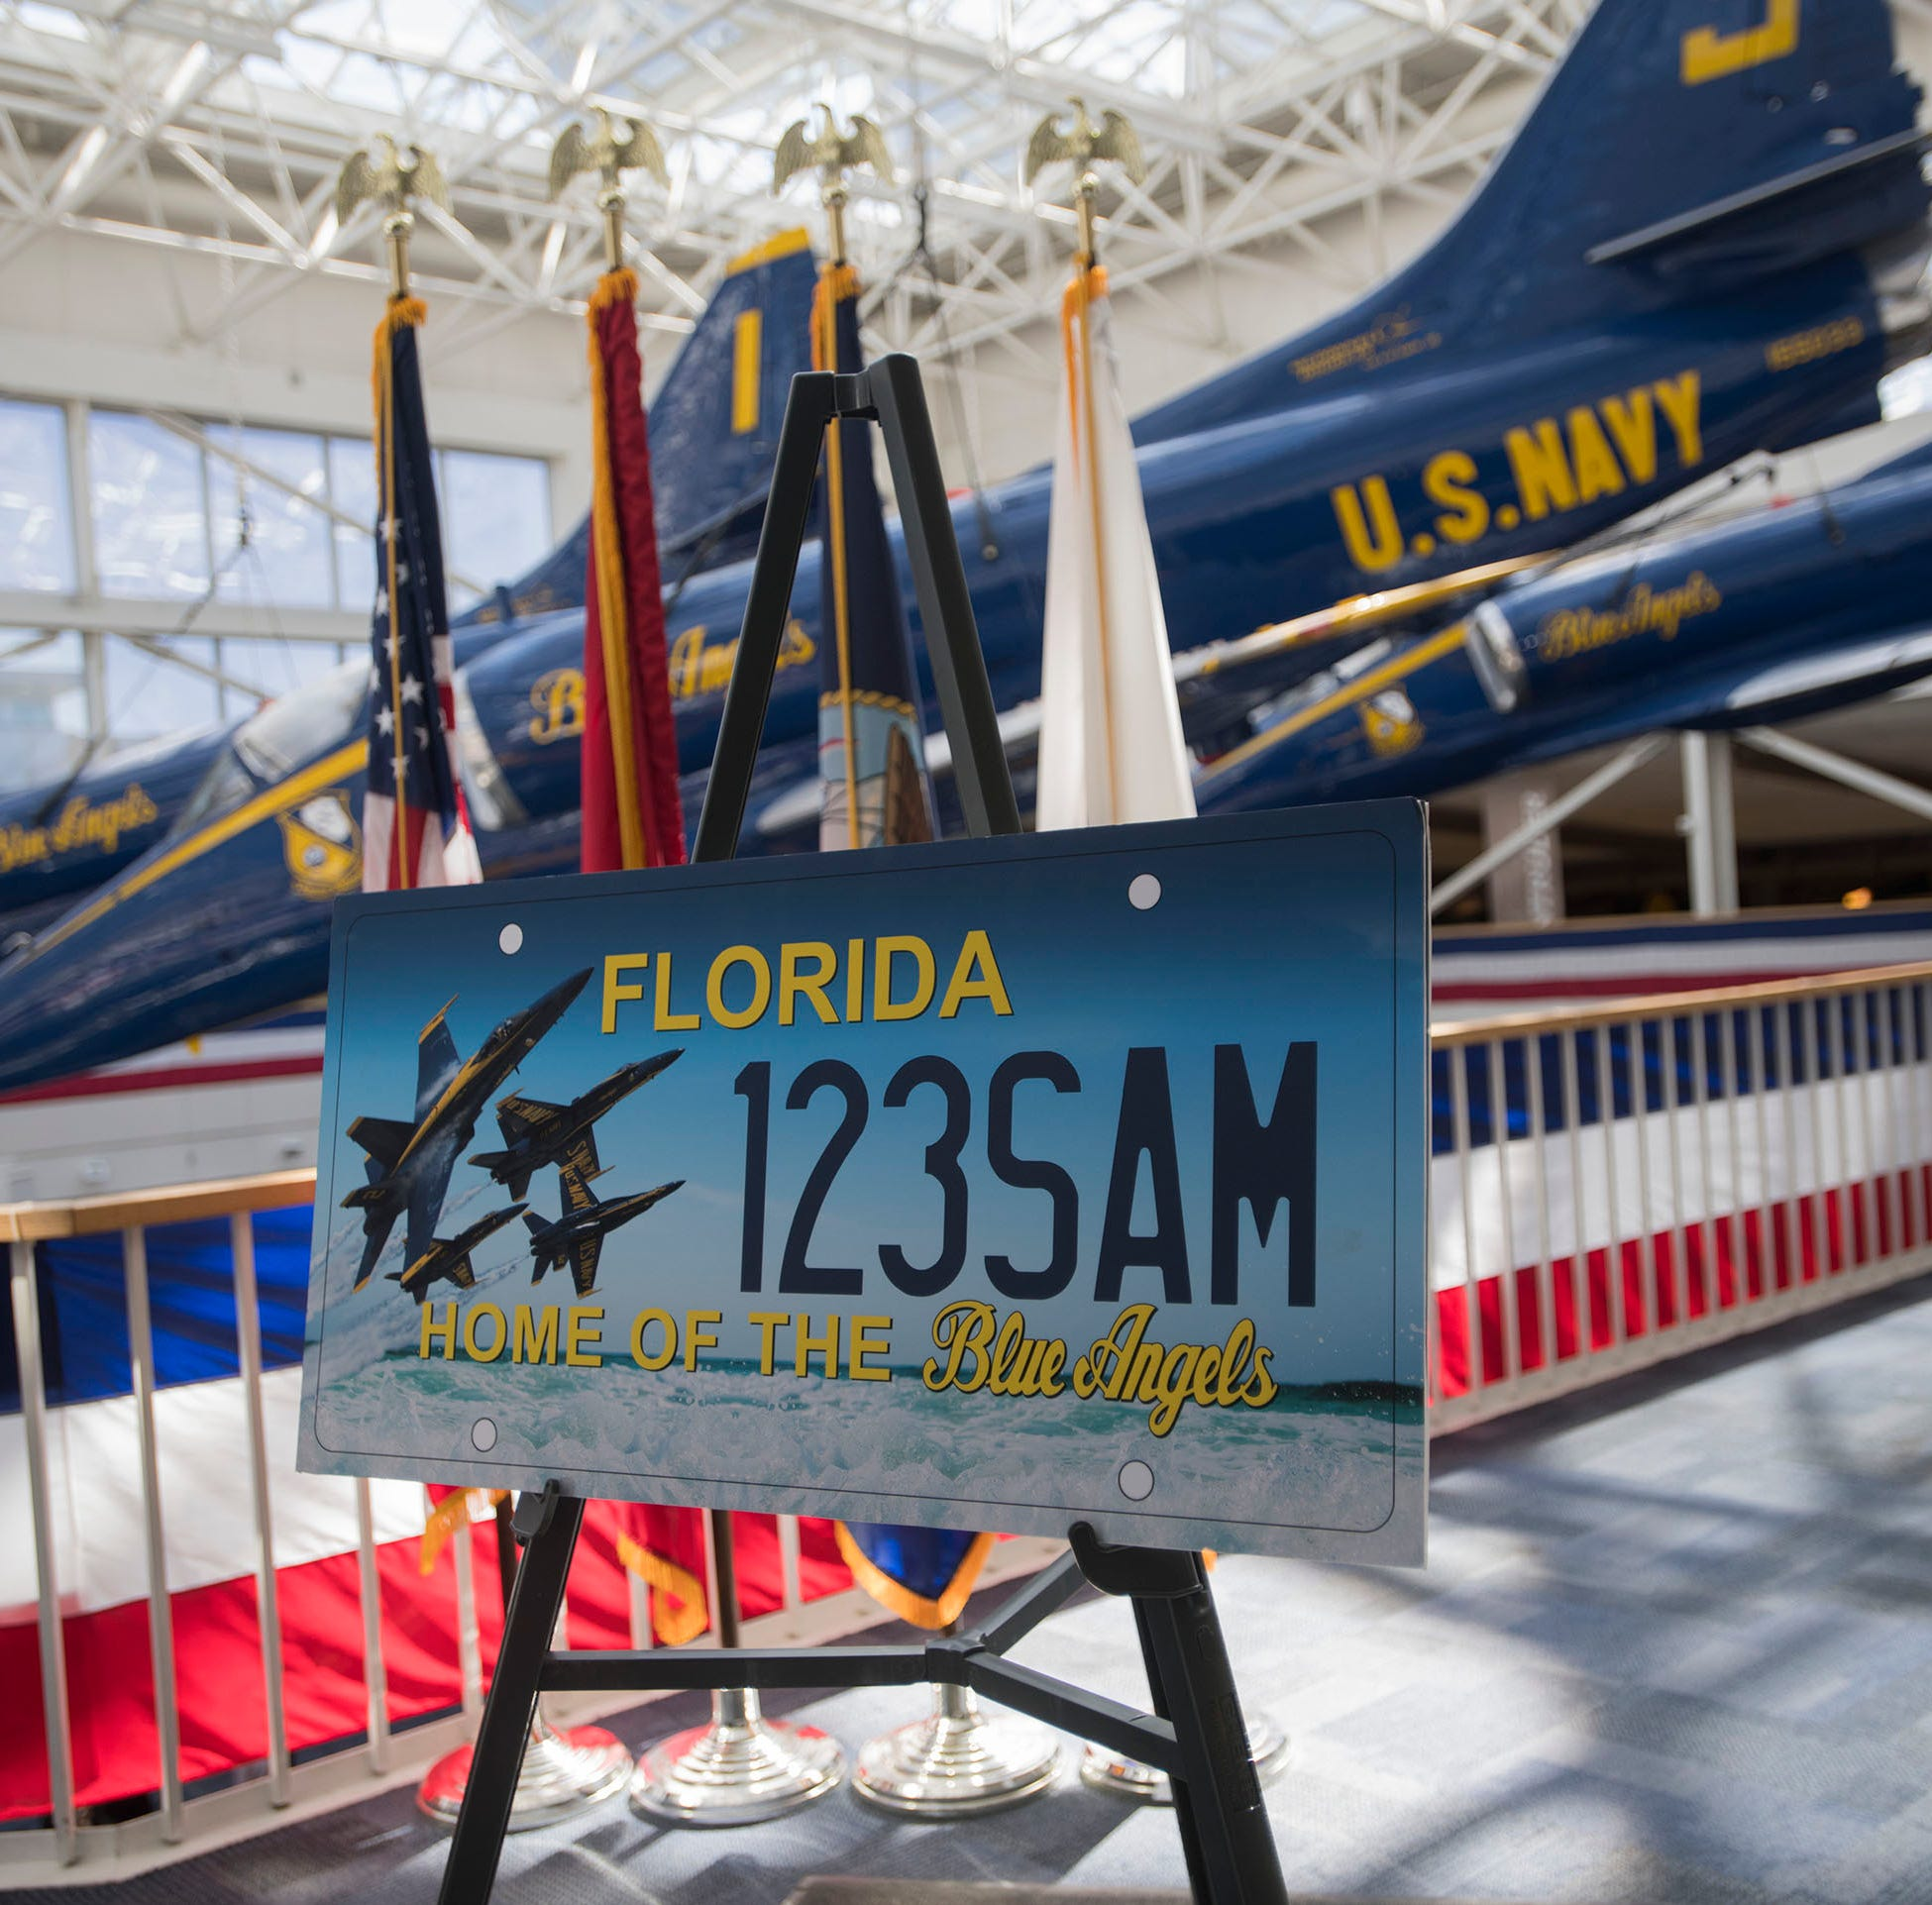 Blue Angels license plates could become major source of funding for Naval Aviation Museum